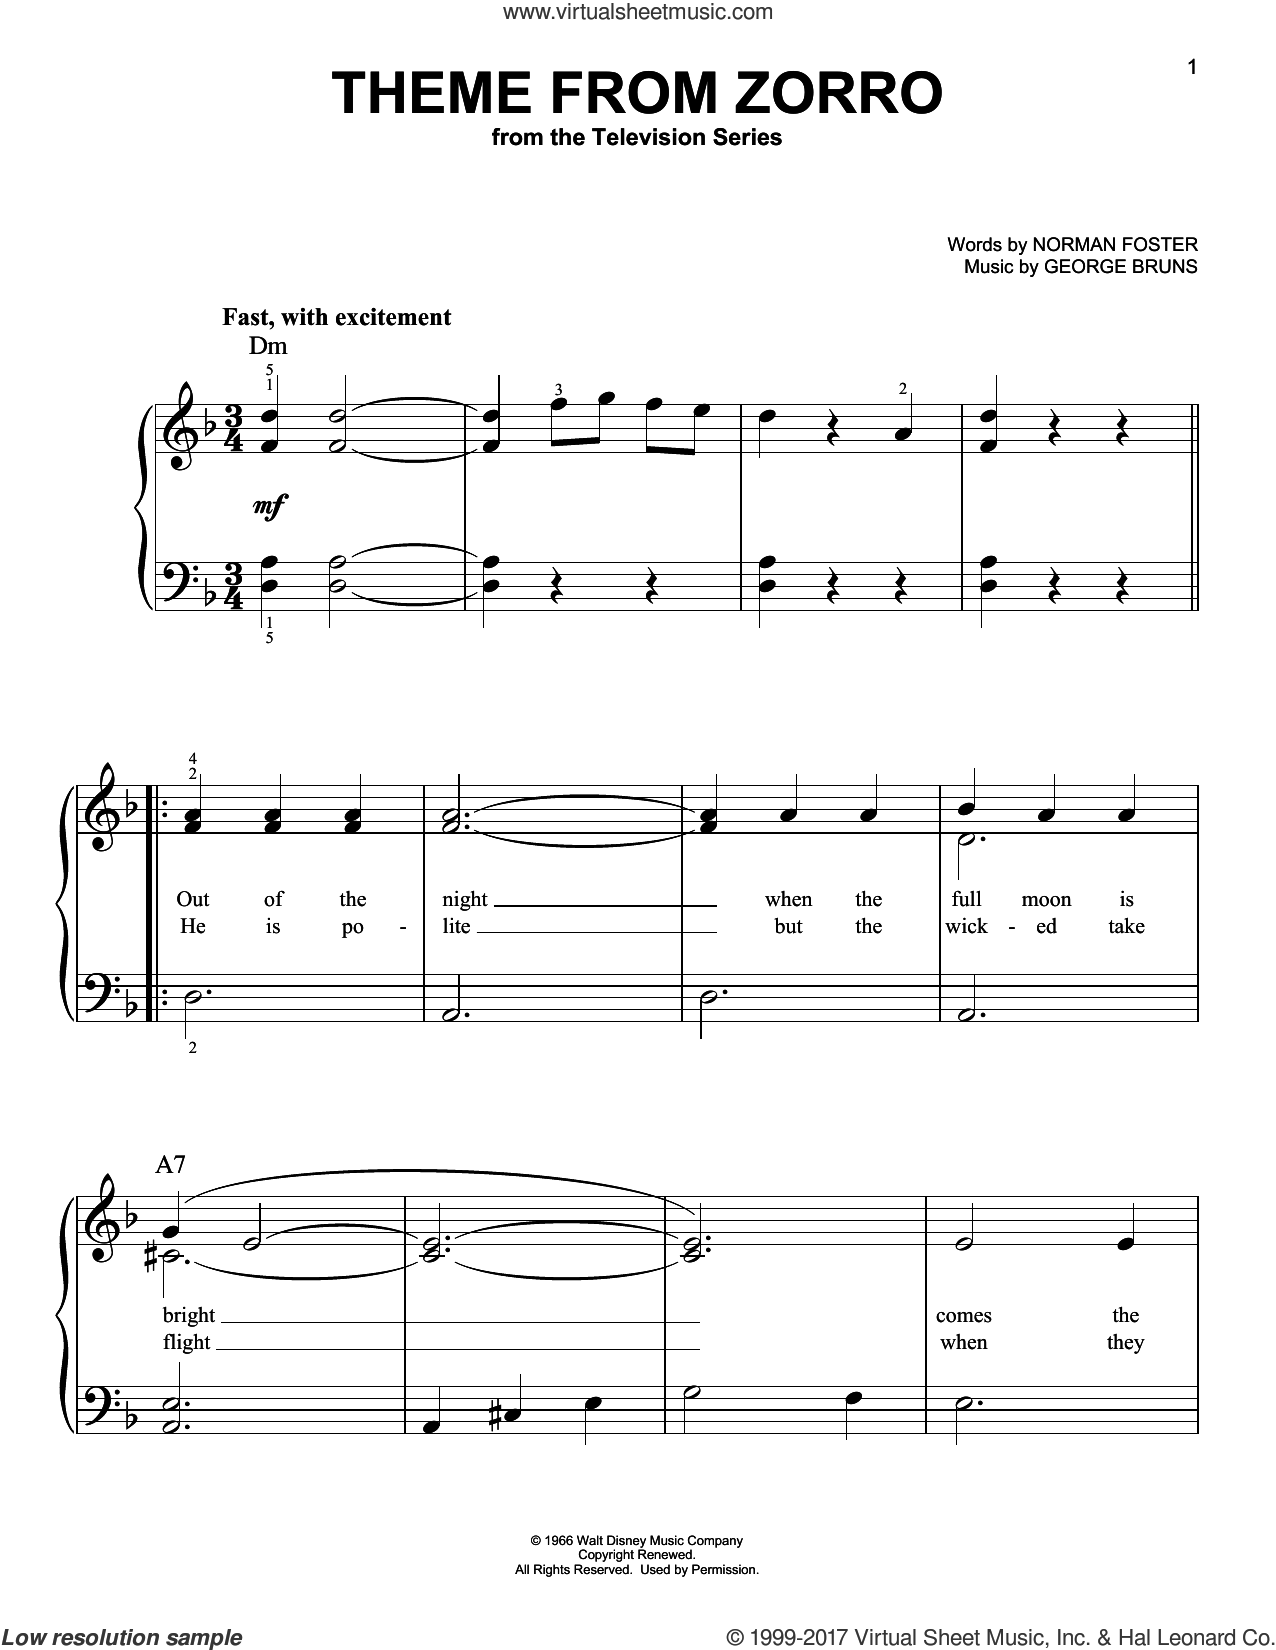 Theme From Zorro sheet music for piano solo by George Bruns and Norman Foster, easy skill level